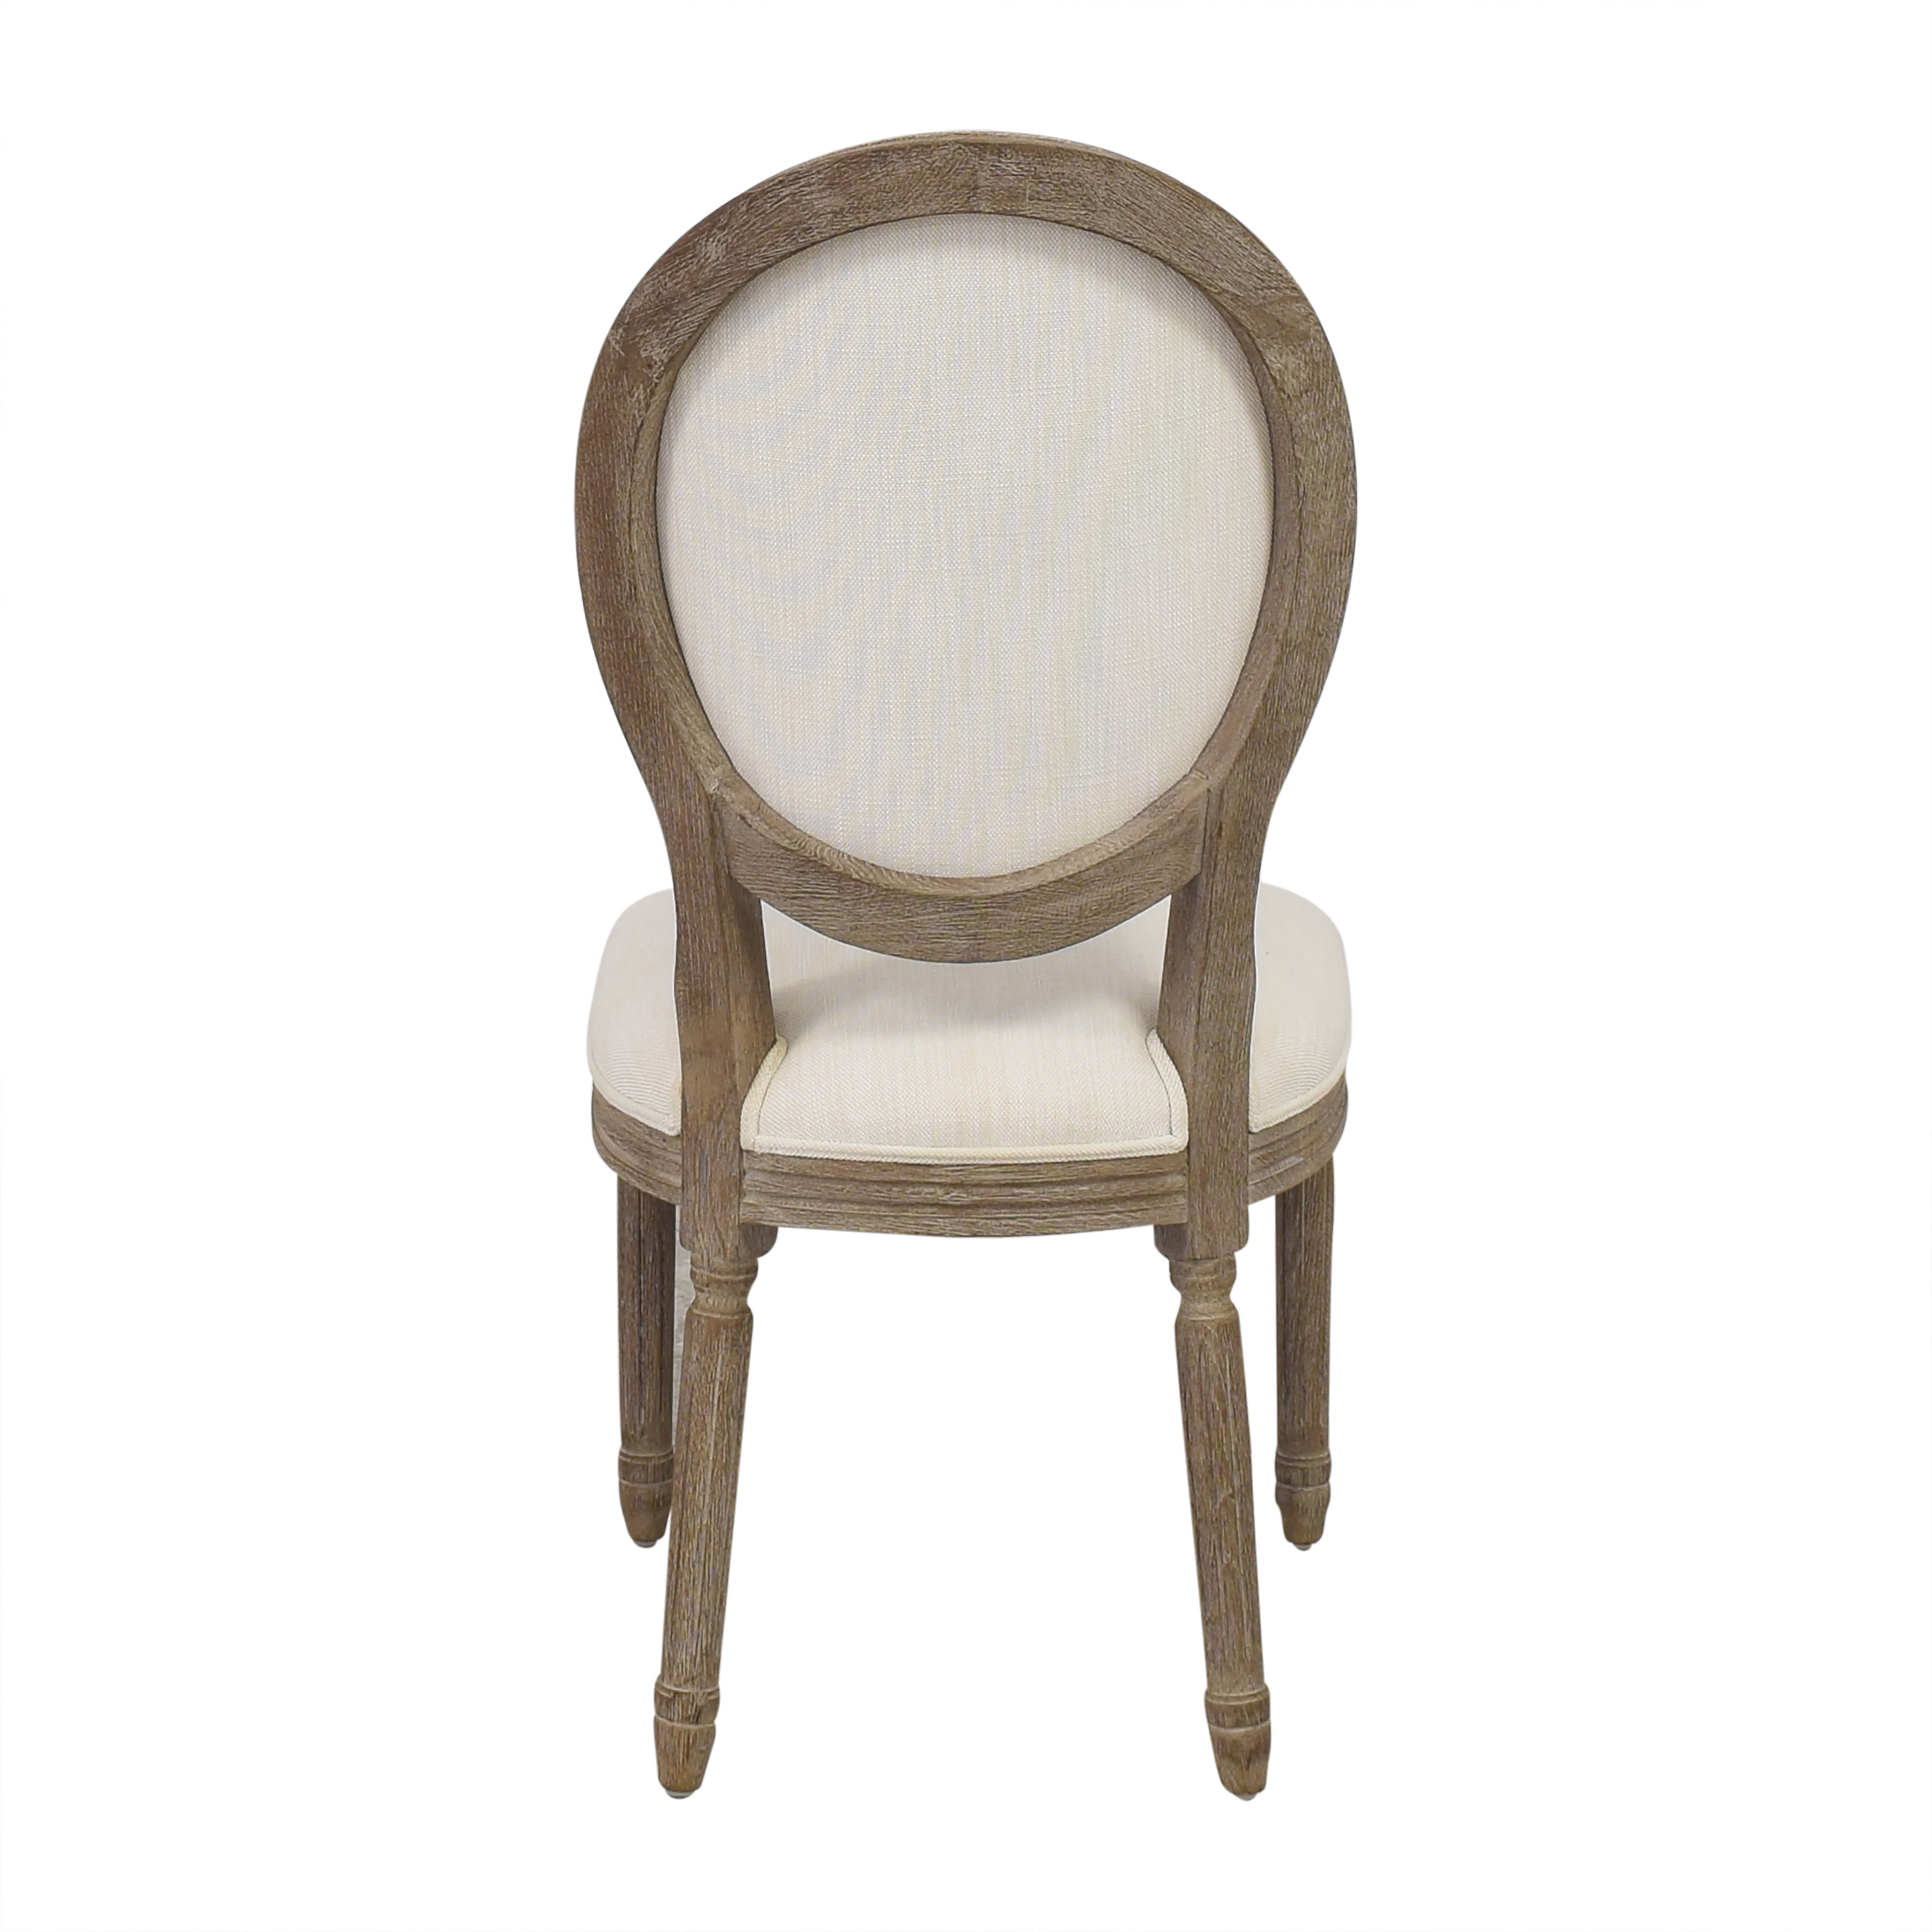 buy Restoration Hardware Restoration Hardware Vintage French Round Side Chair online